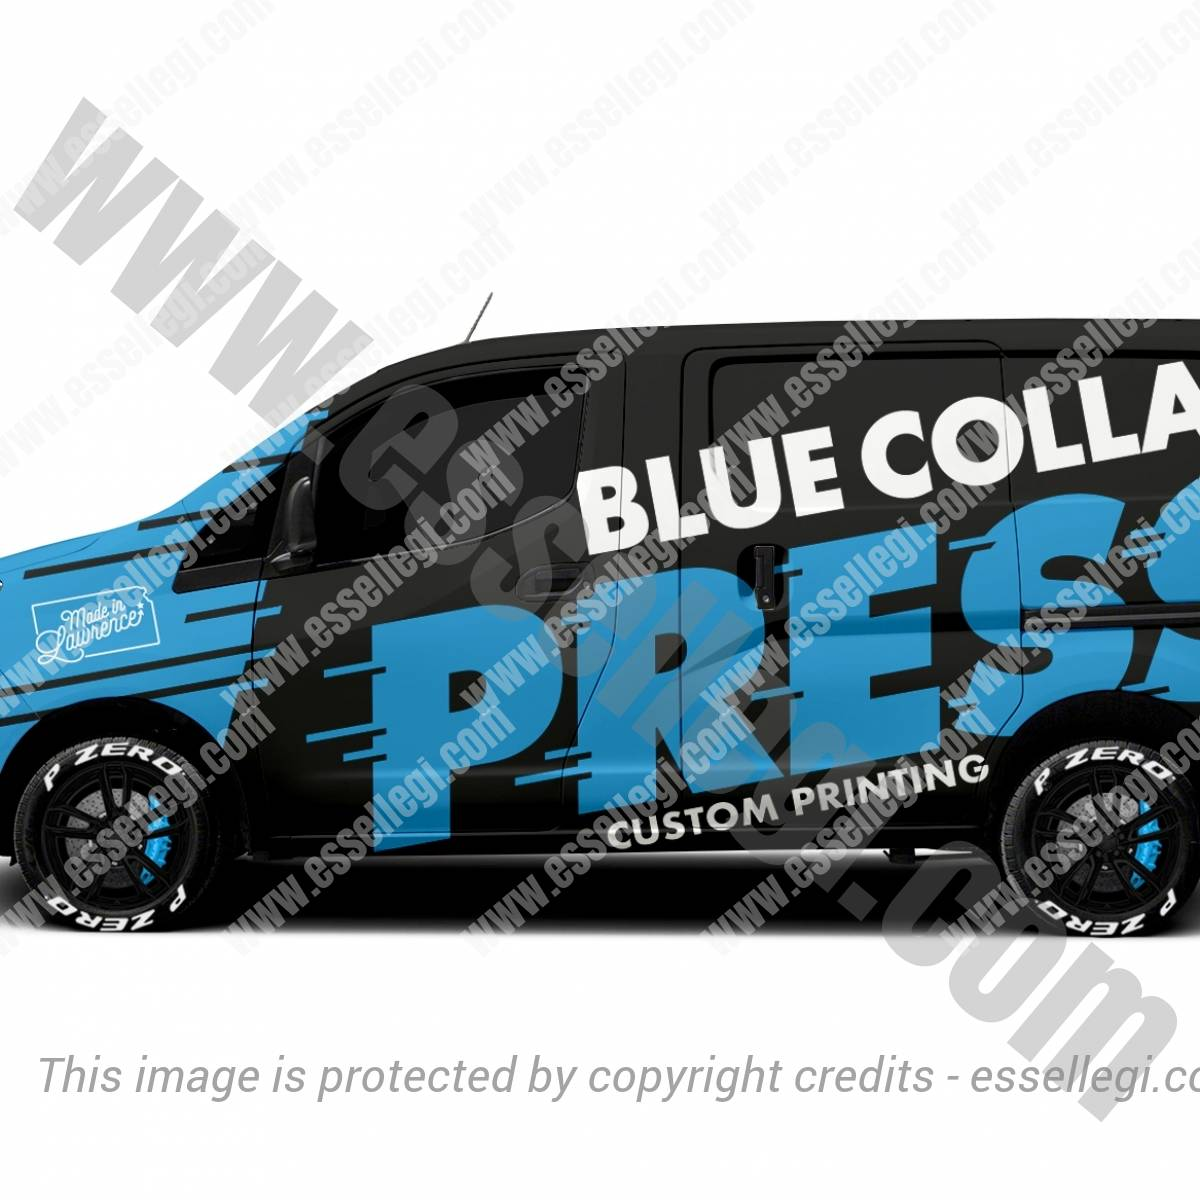 BLUE COLLAR PRESS | VAN WRAP DESIGN 🇺🇸